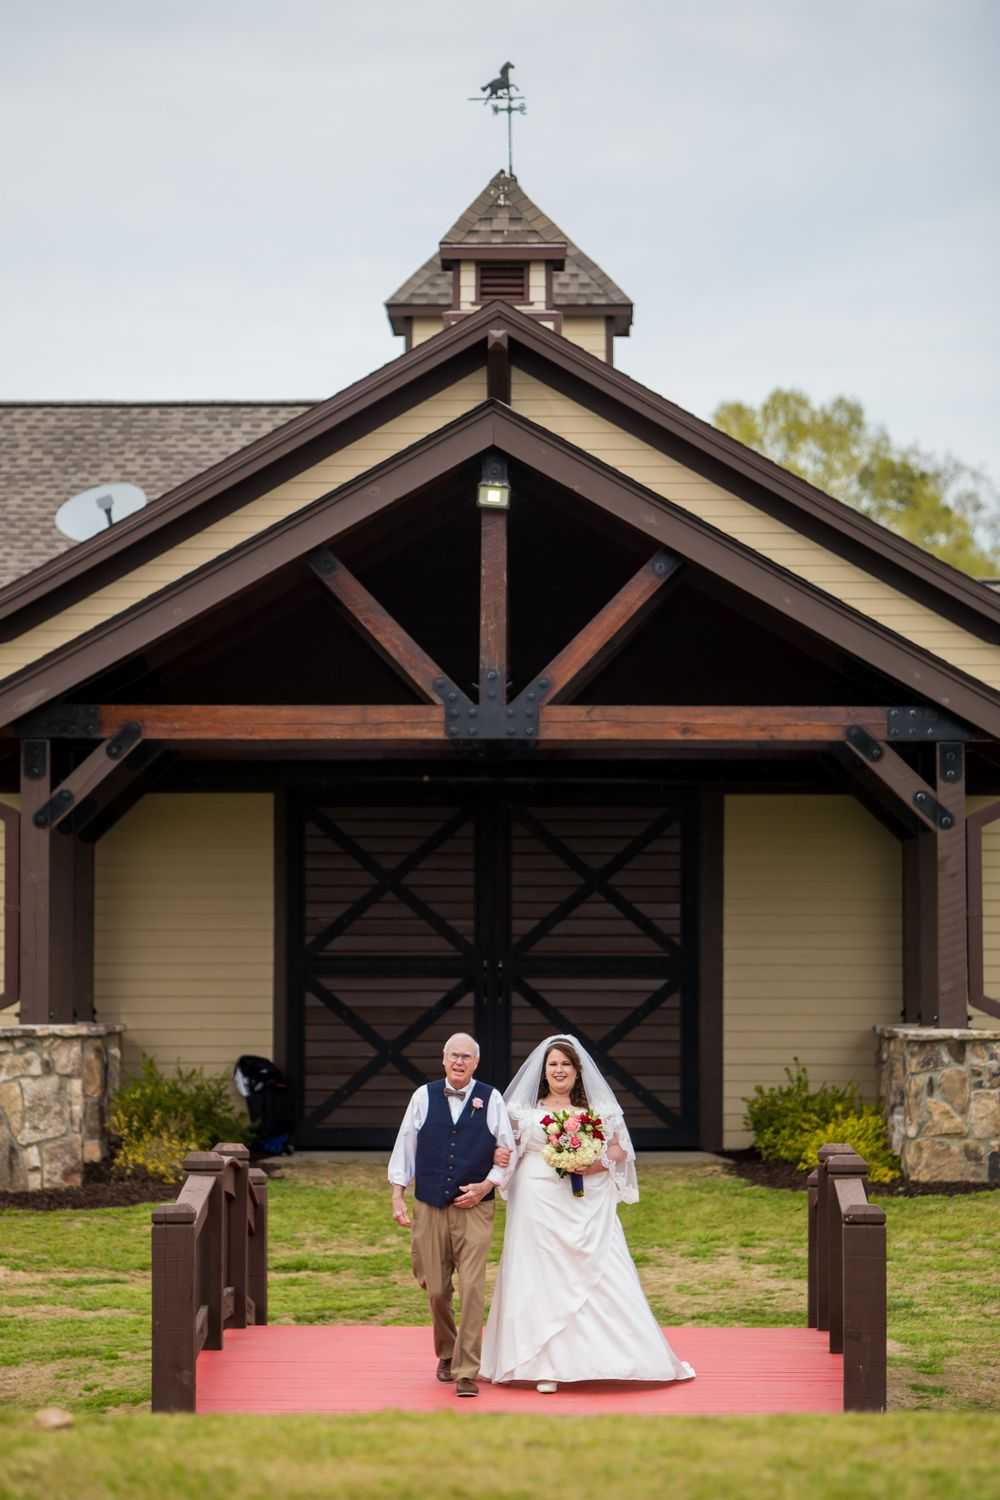 The father walks the bride across the bridge during a wedding ceremony at the Farm at Ridgeway in Ridgeway, SC